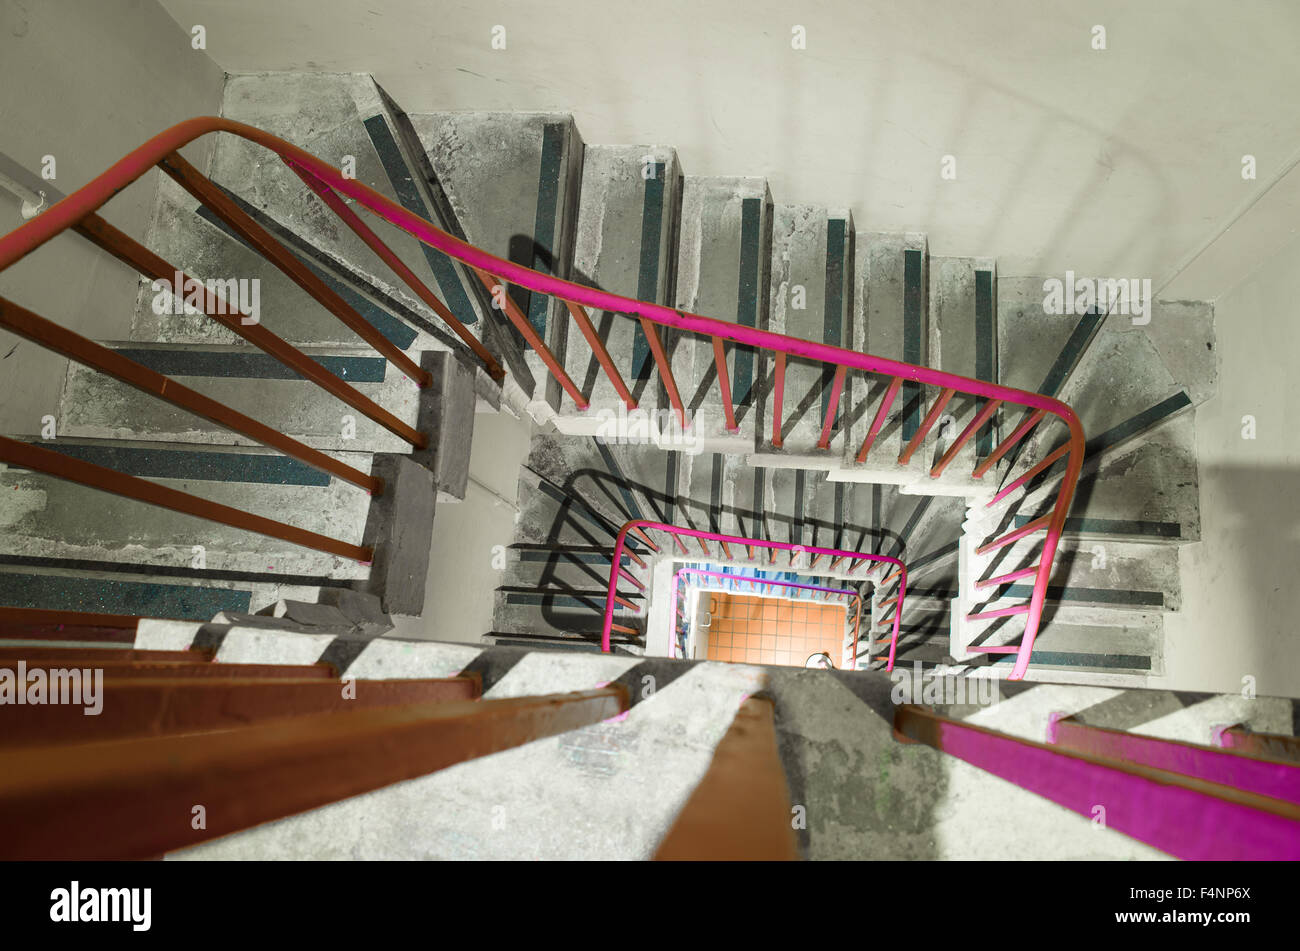 Staircase inside the Wellington Arch, London. - Stock Image